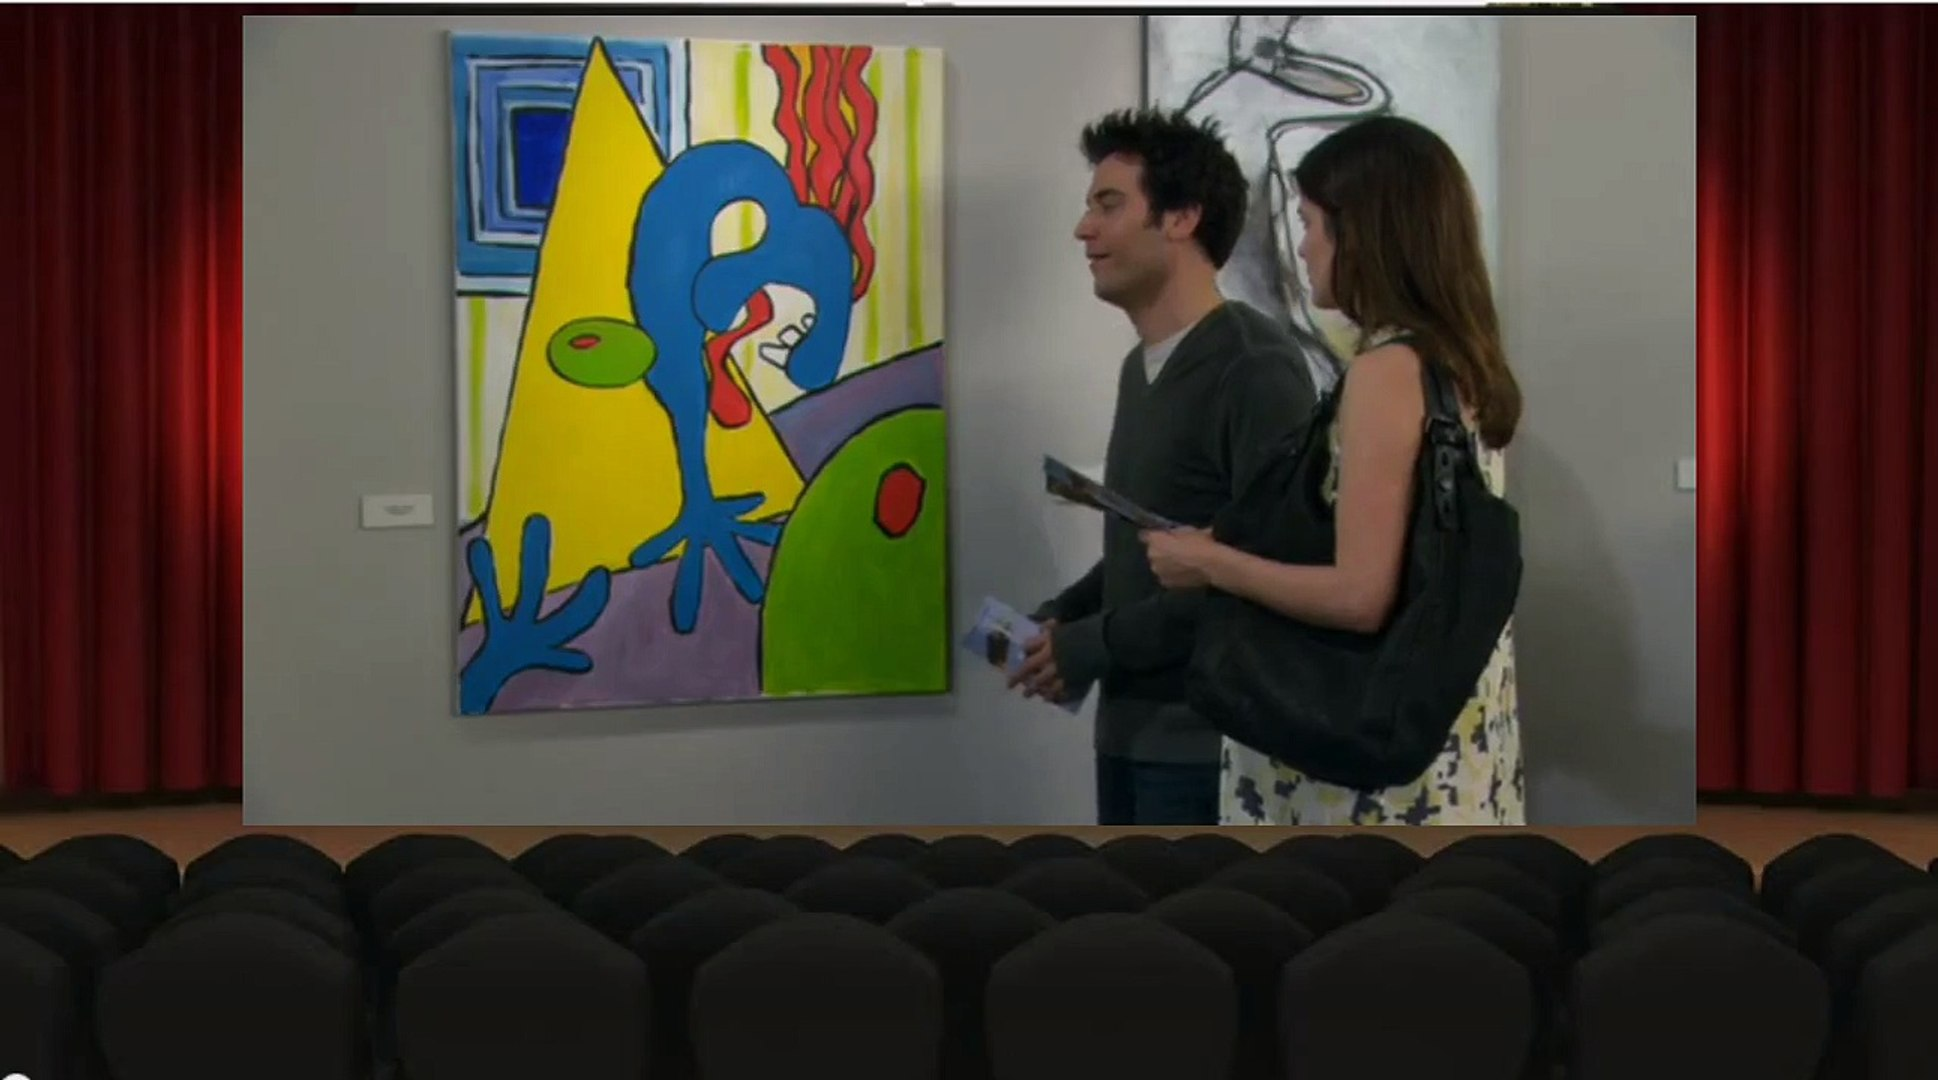 How I Met Your Mother - S 4 E 21 - The Three Days Rule